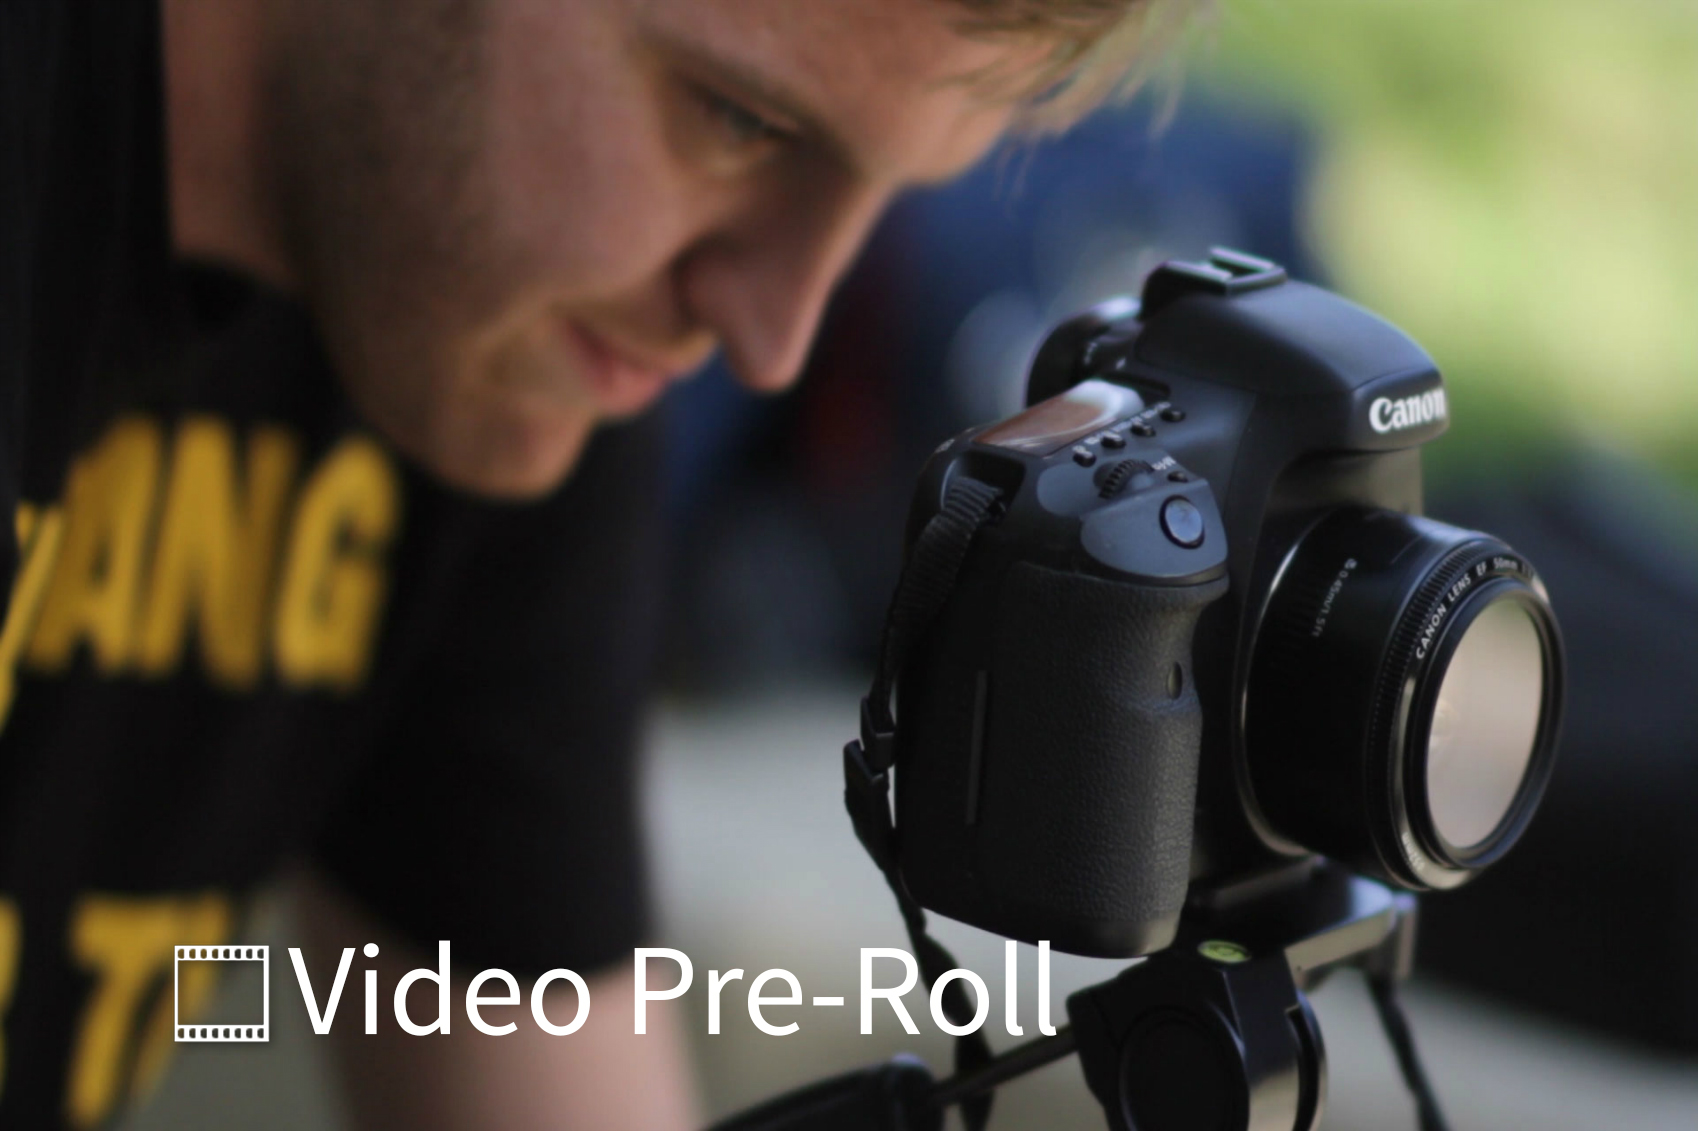 Video Pre-Roll